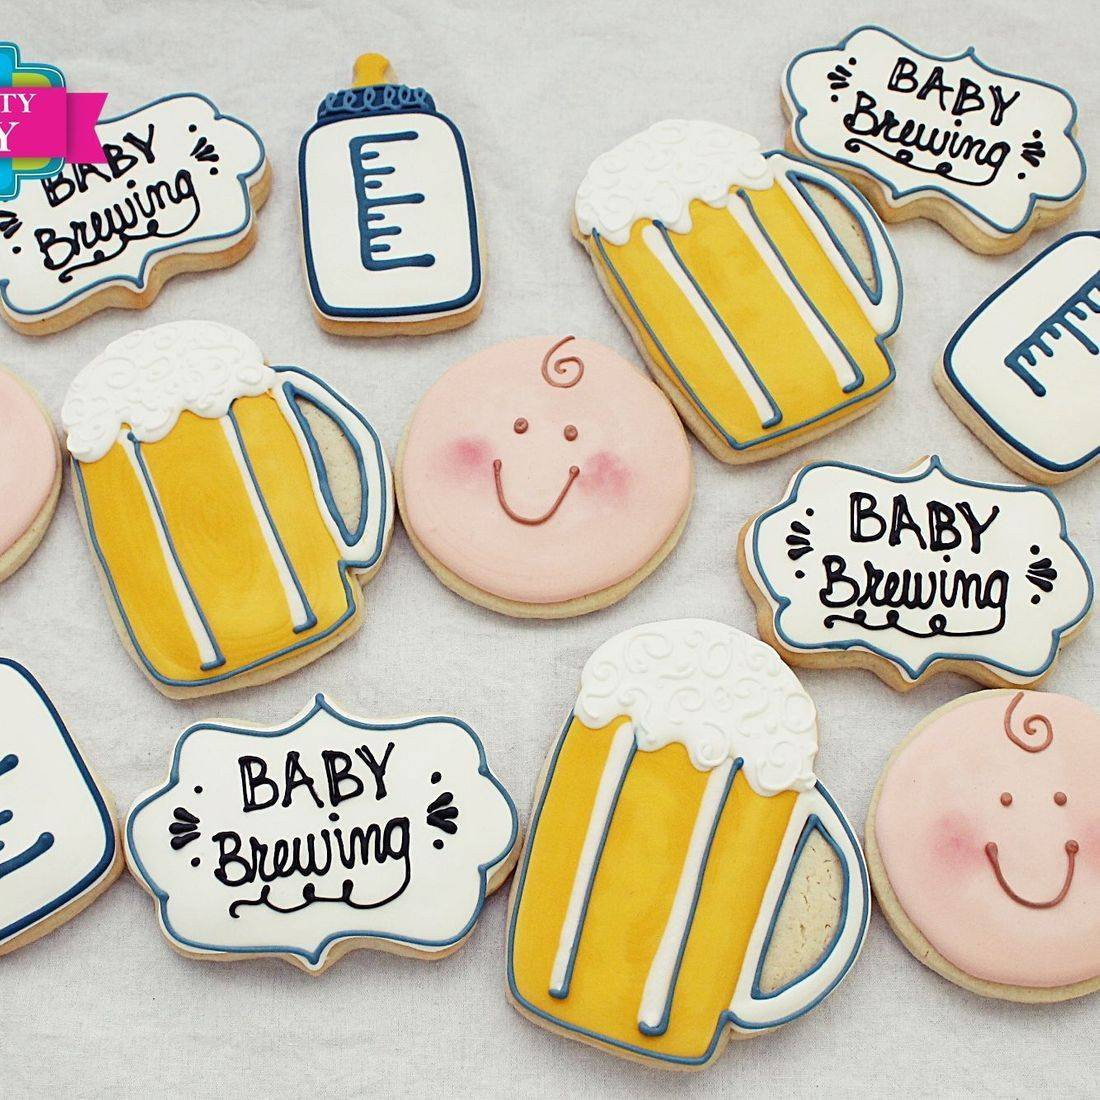 Baby Brewing  Cookies Milwaukee